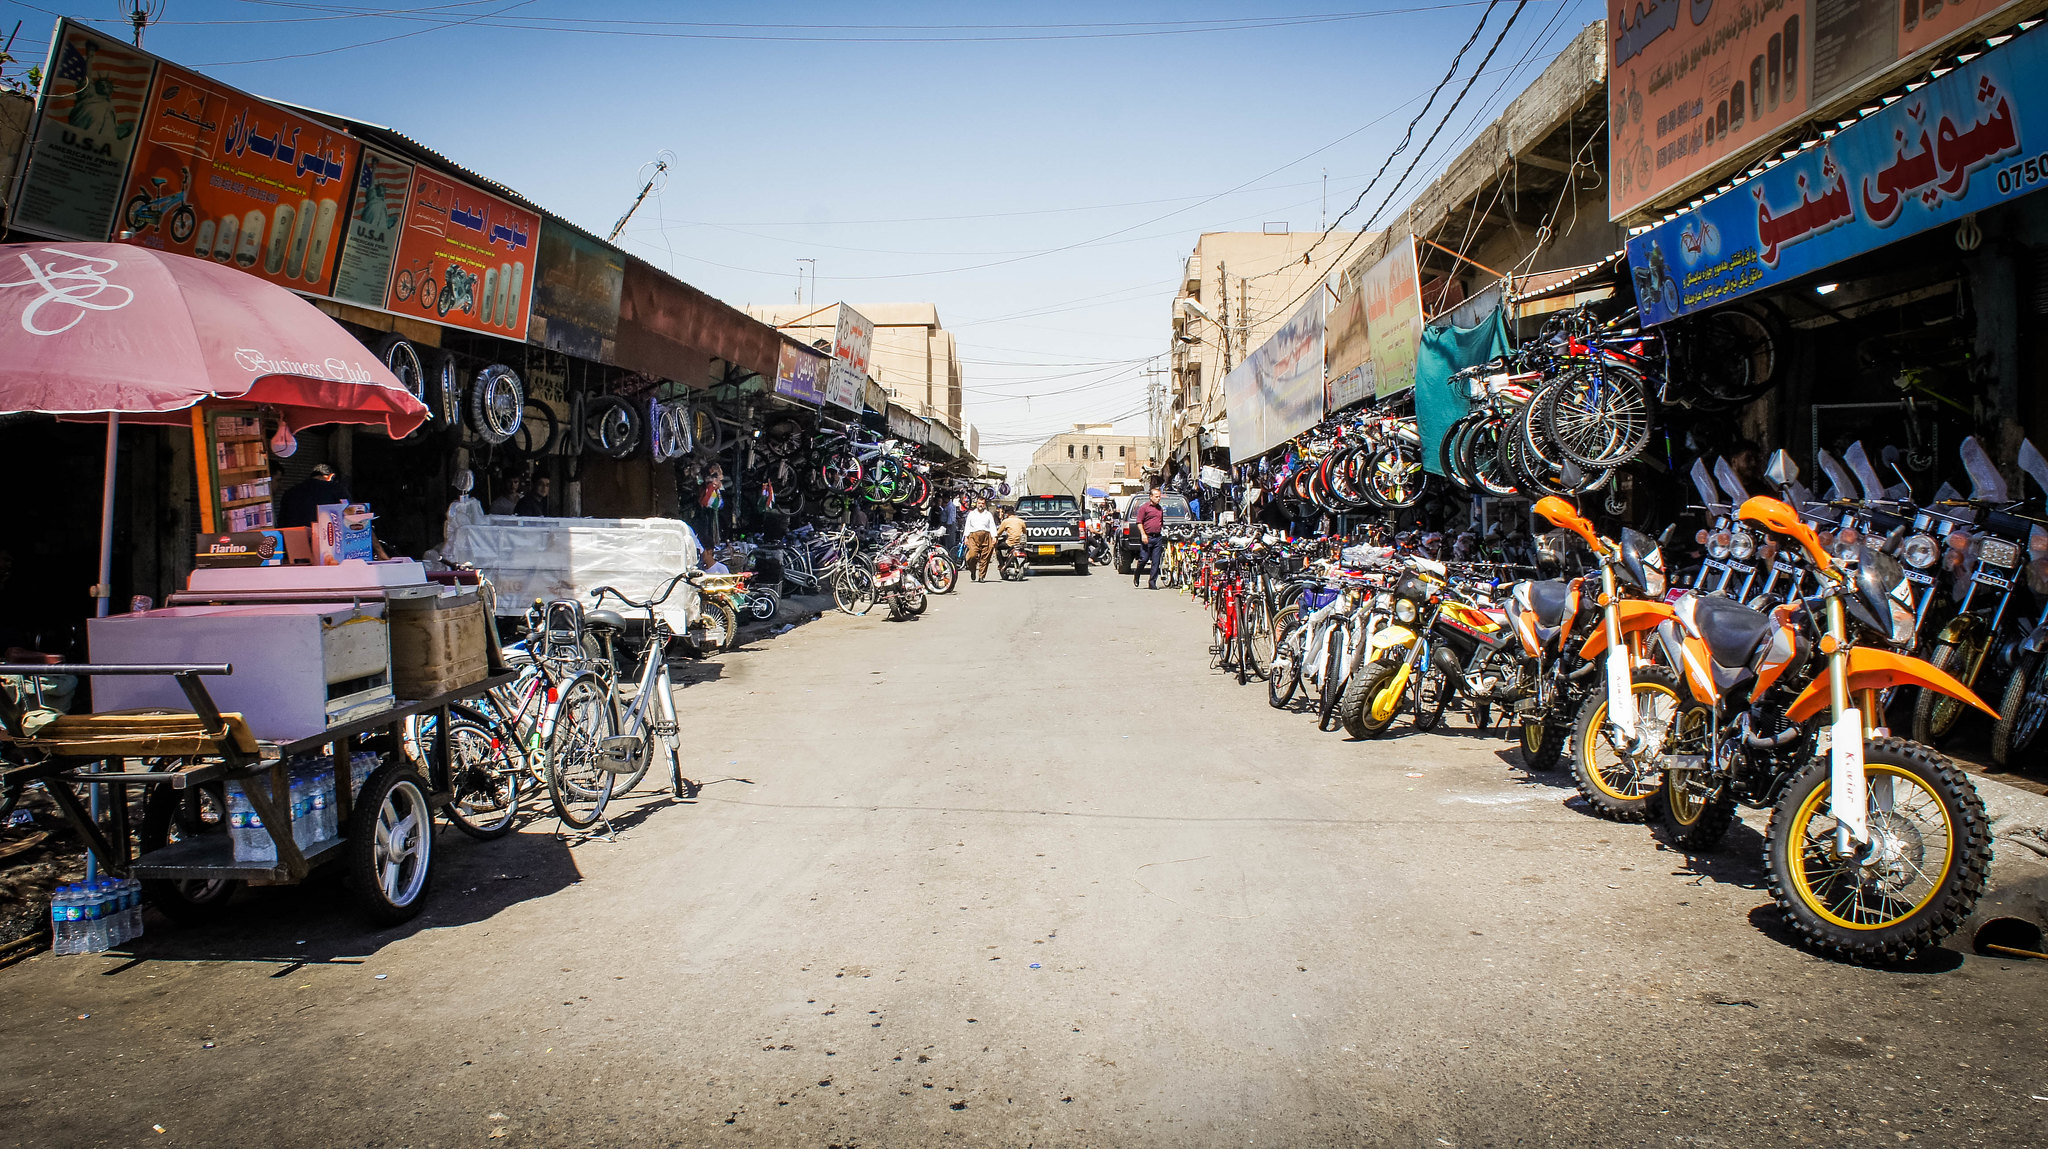 Bicycle bazaar